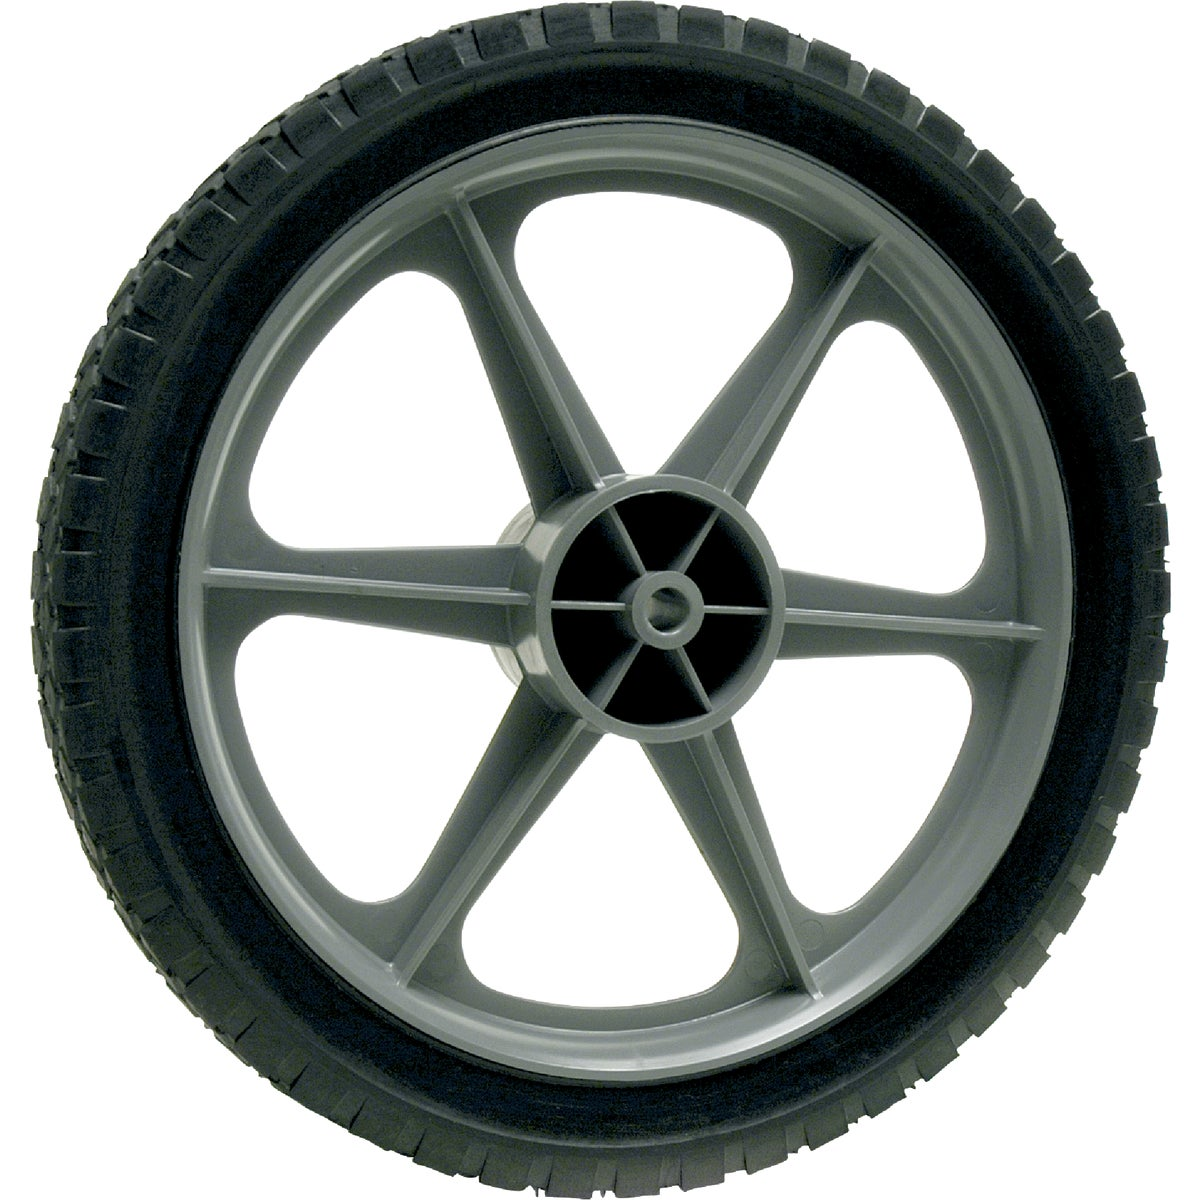 14X1.75 HIGH SPOKE WHEEL